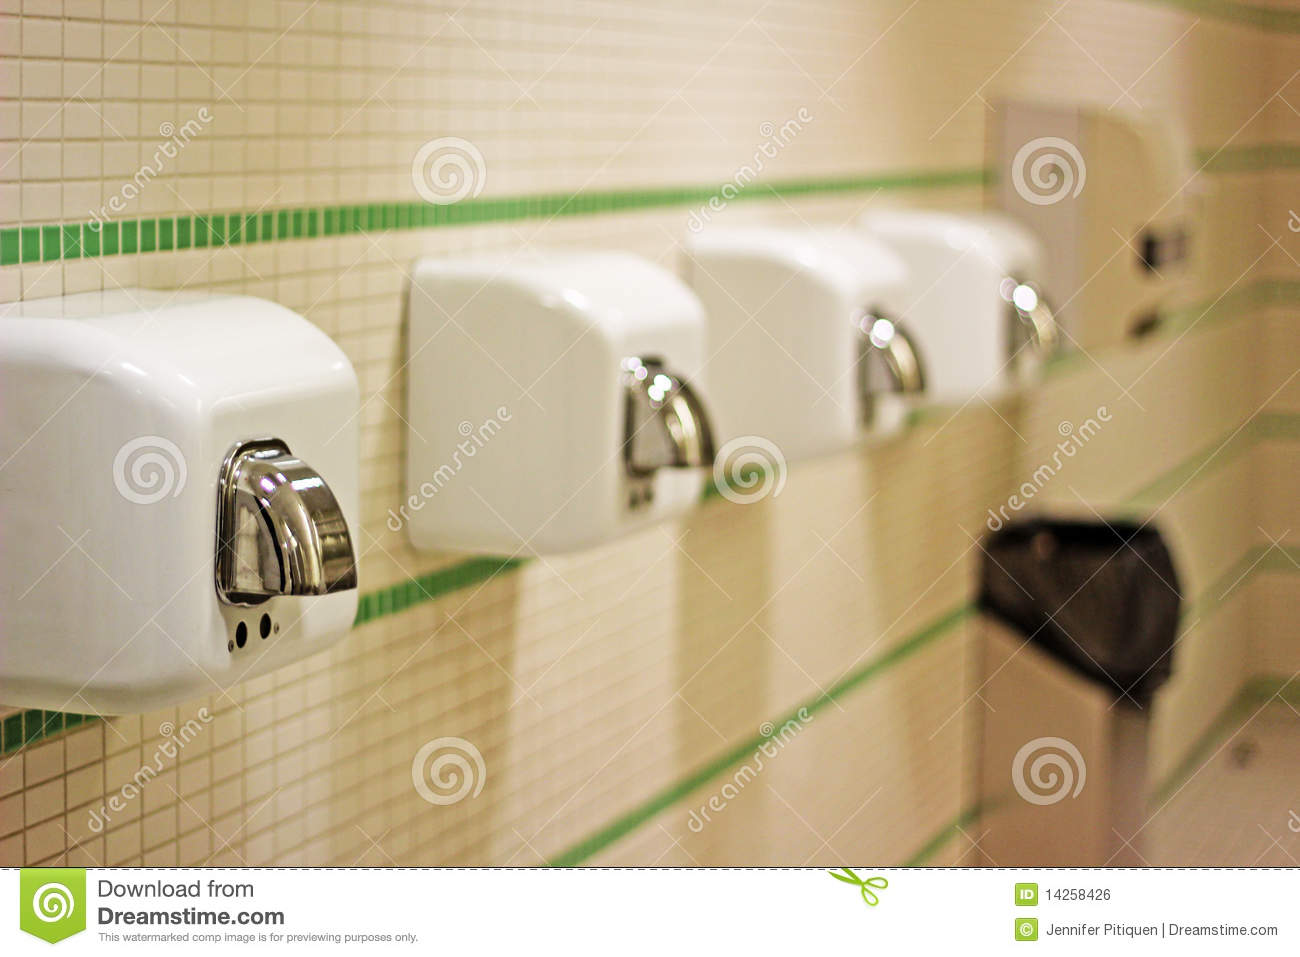 Use hand dryers instead of paper towels in the bathroom - Image courtesy of http://thumbs.dreamstime.com/z/hand-dryer-14258426.jpg